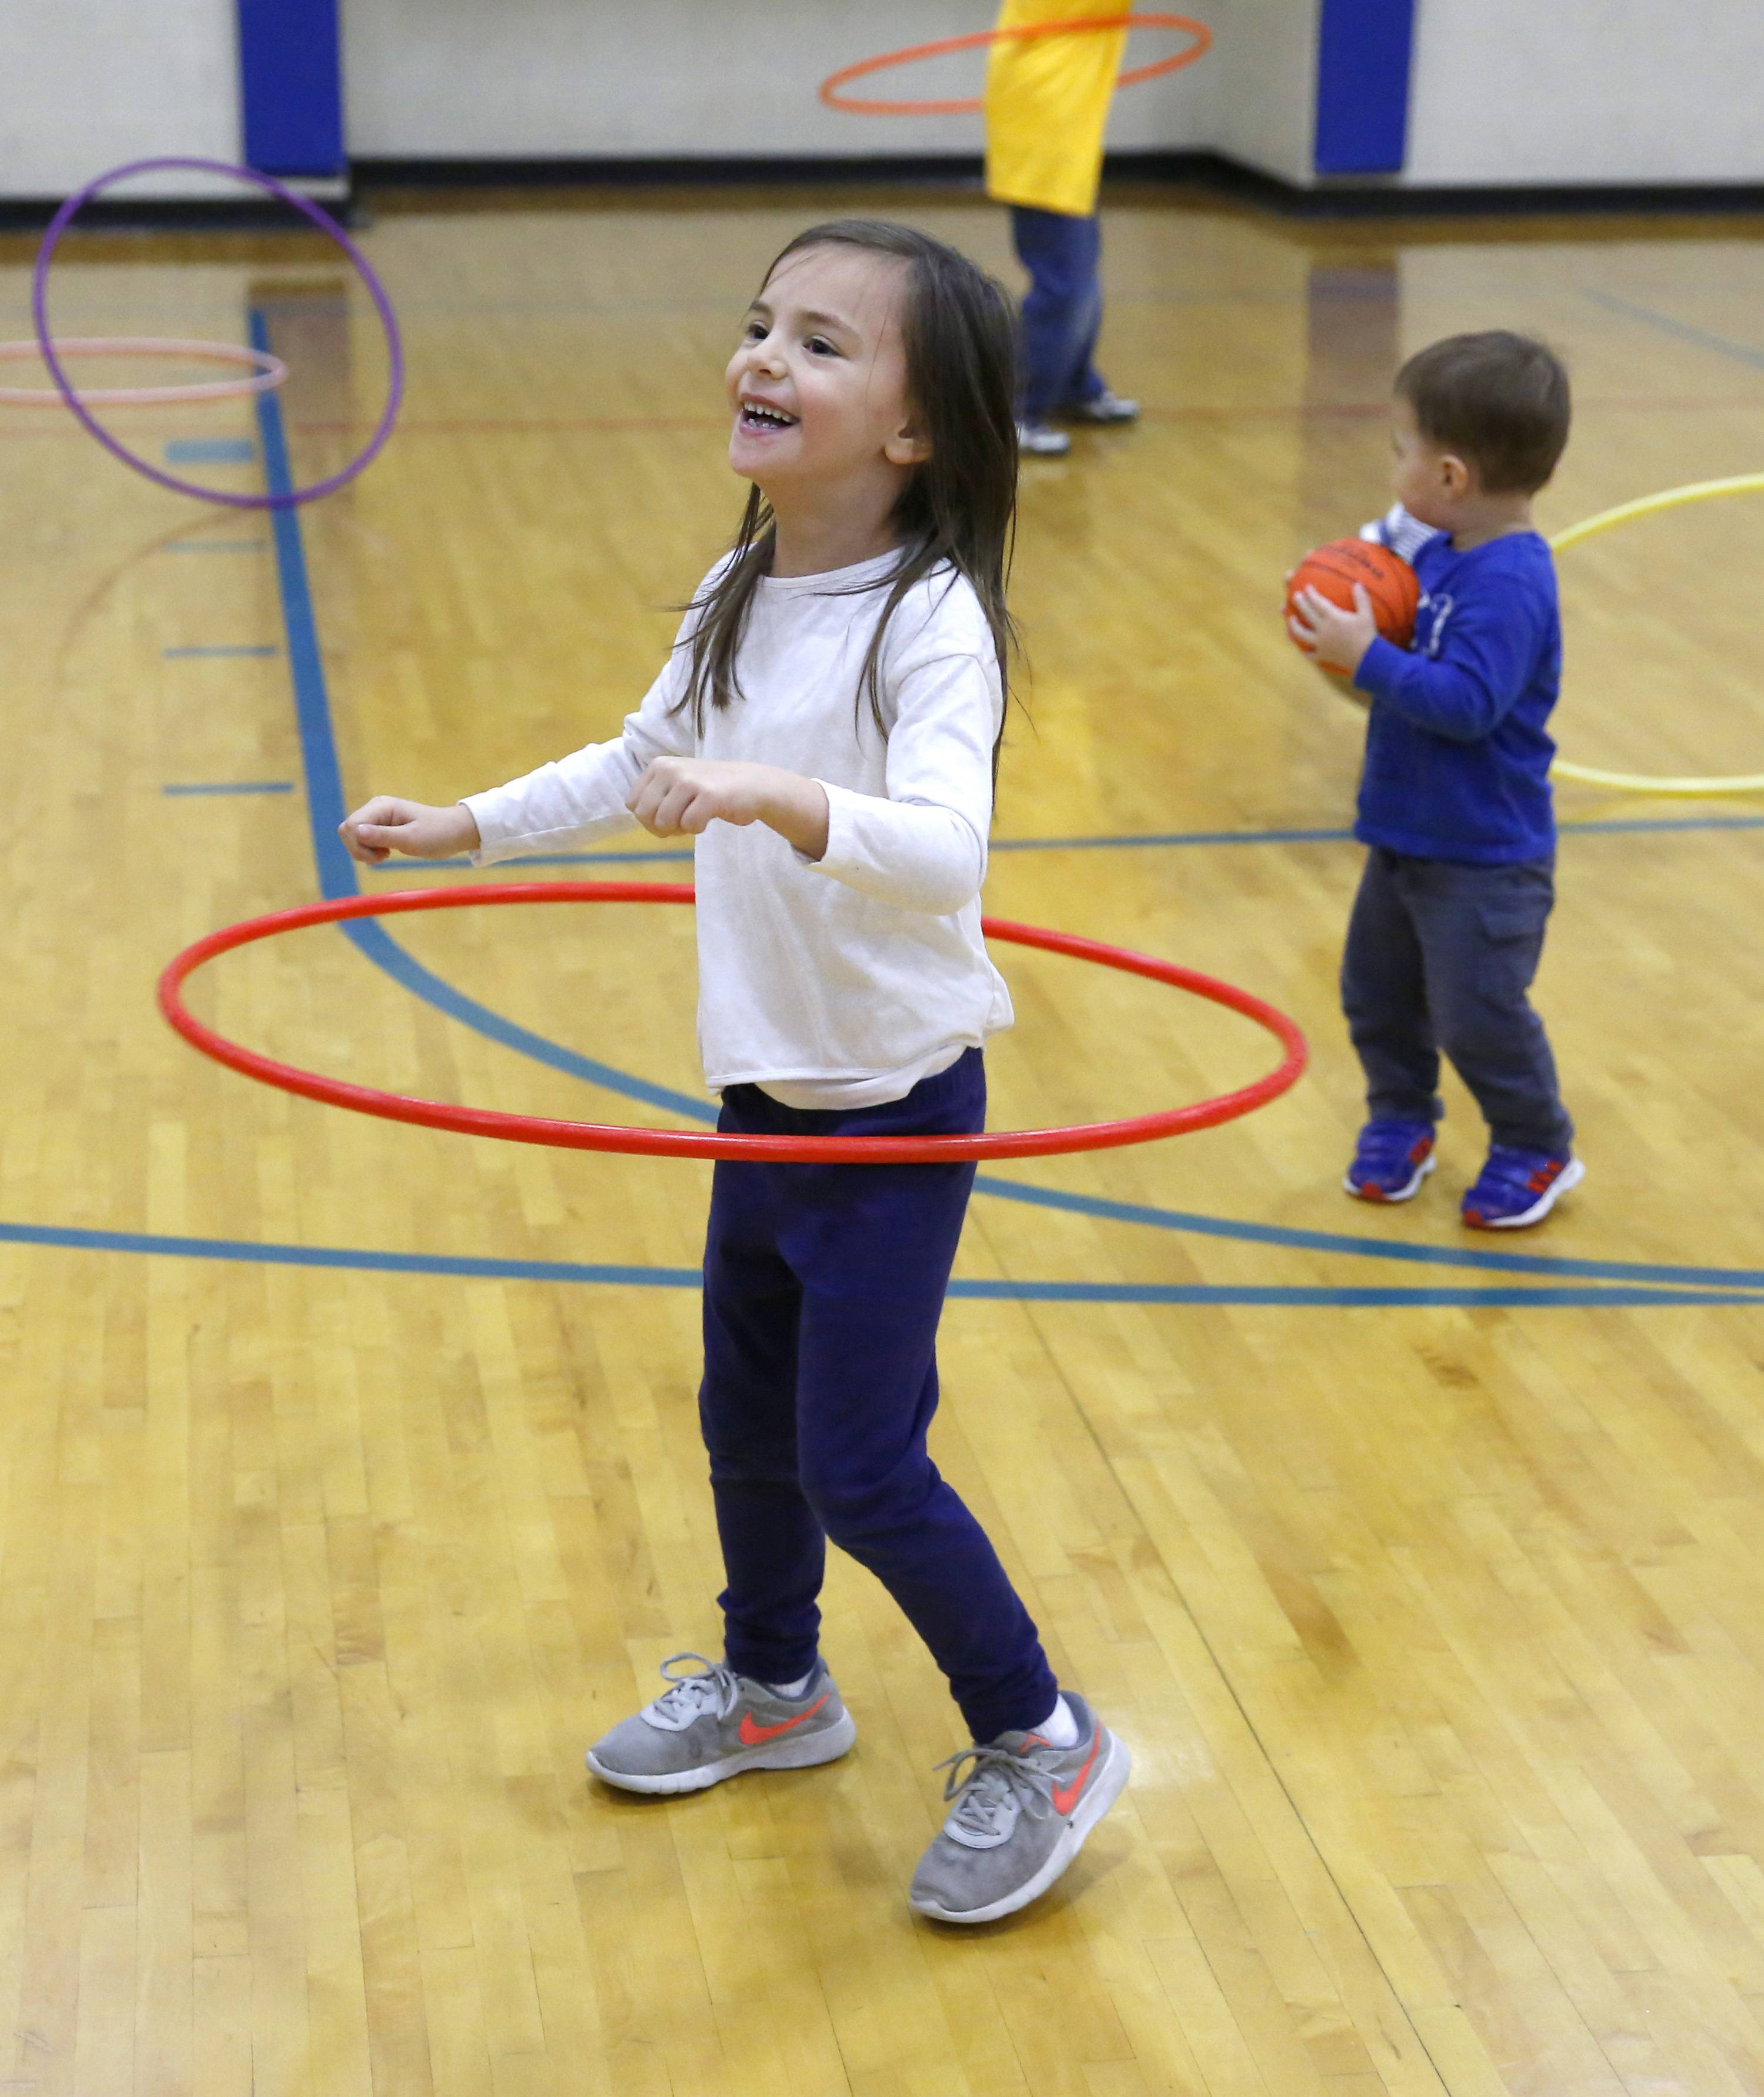 Lana Djuric, 6, of Wood Dale practices with her Hula Hoop as the Wood Dale Park District celebrates its 50th anniversary at the Wood Dale Park District Recreation Complex.